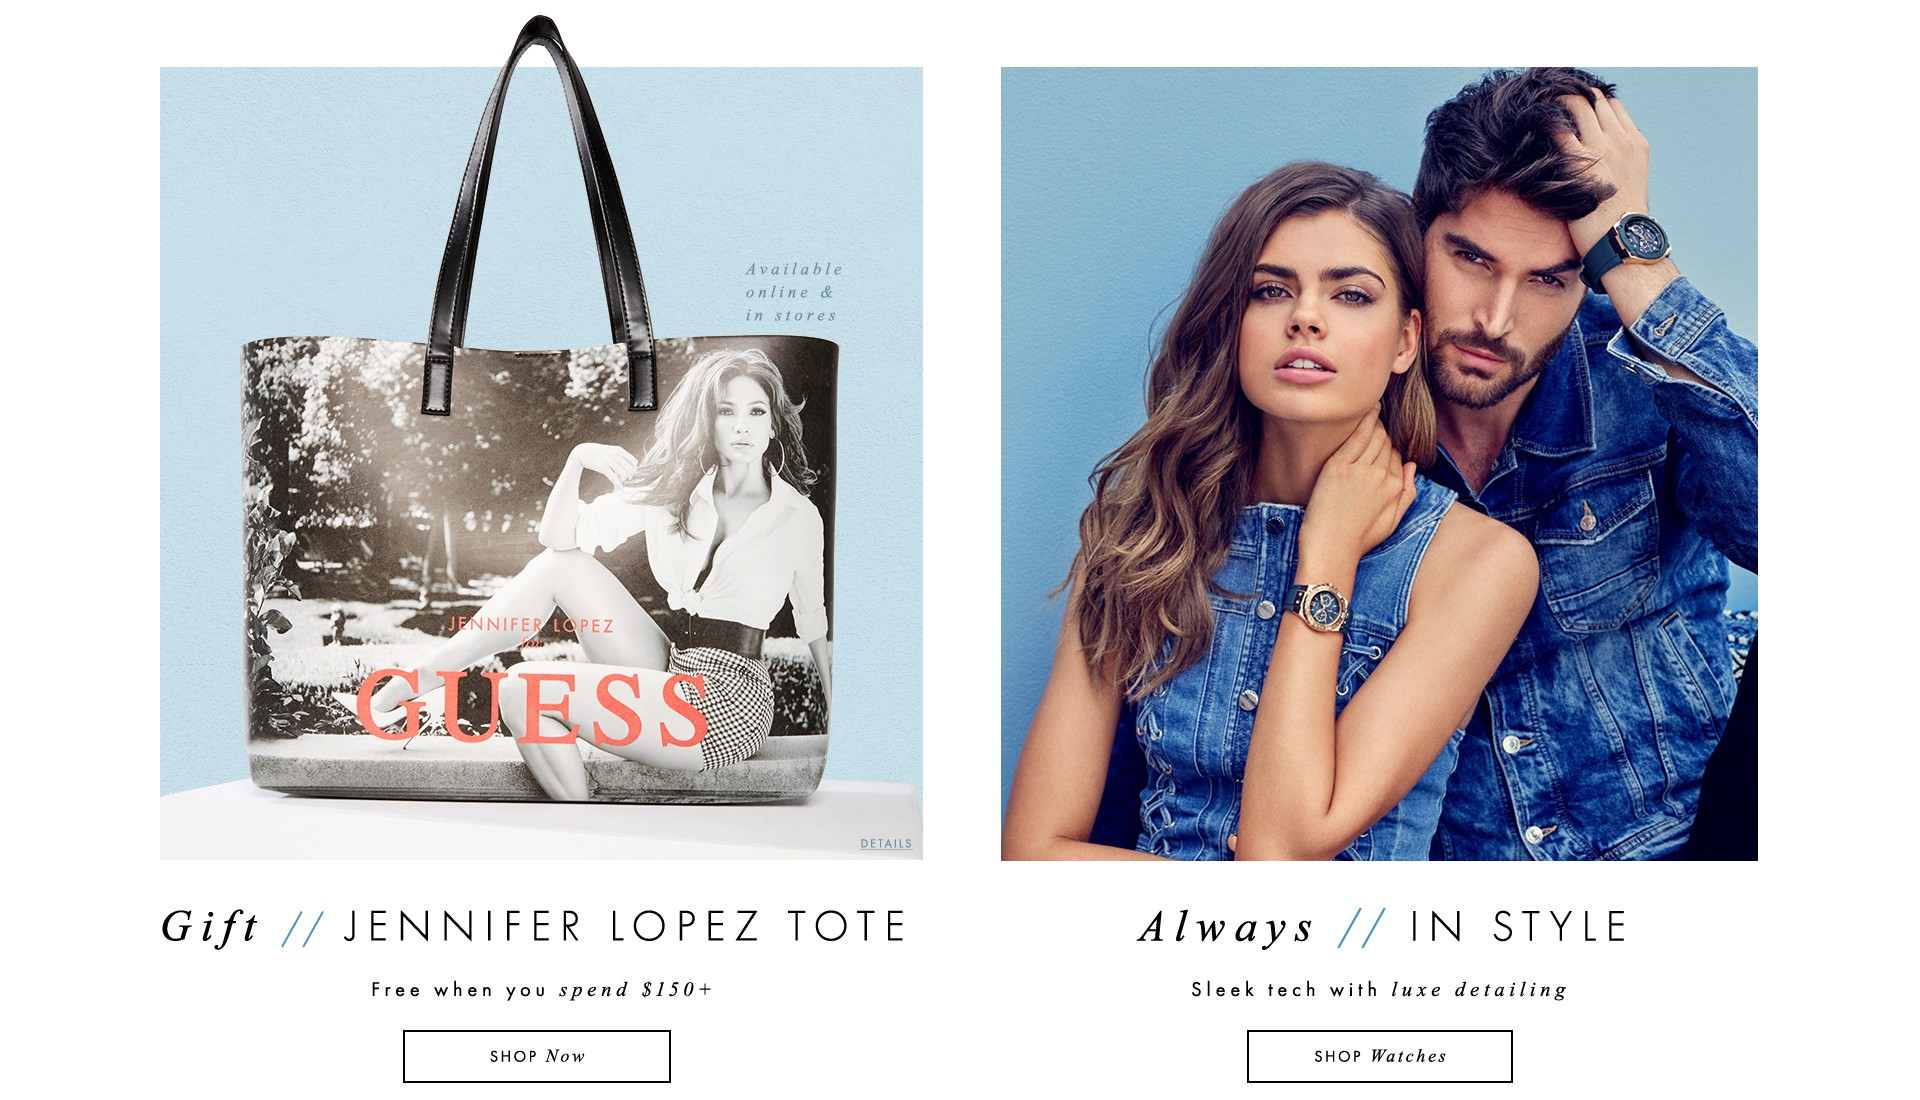 Jennifer Lopez Tote and Watches